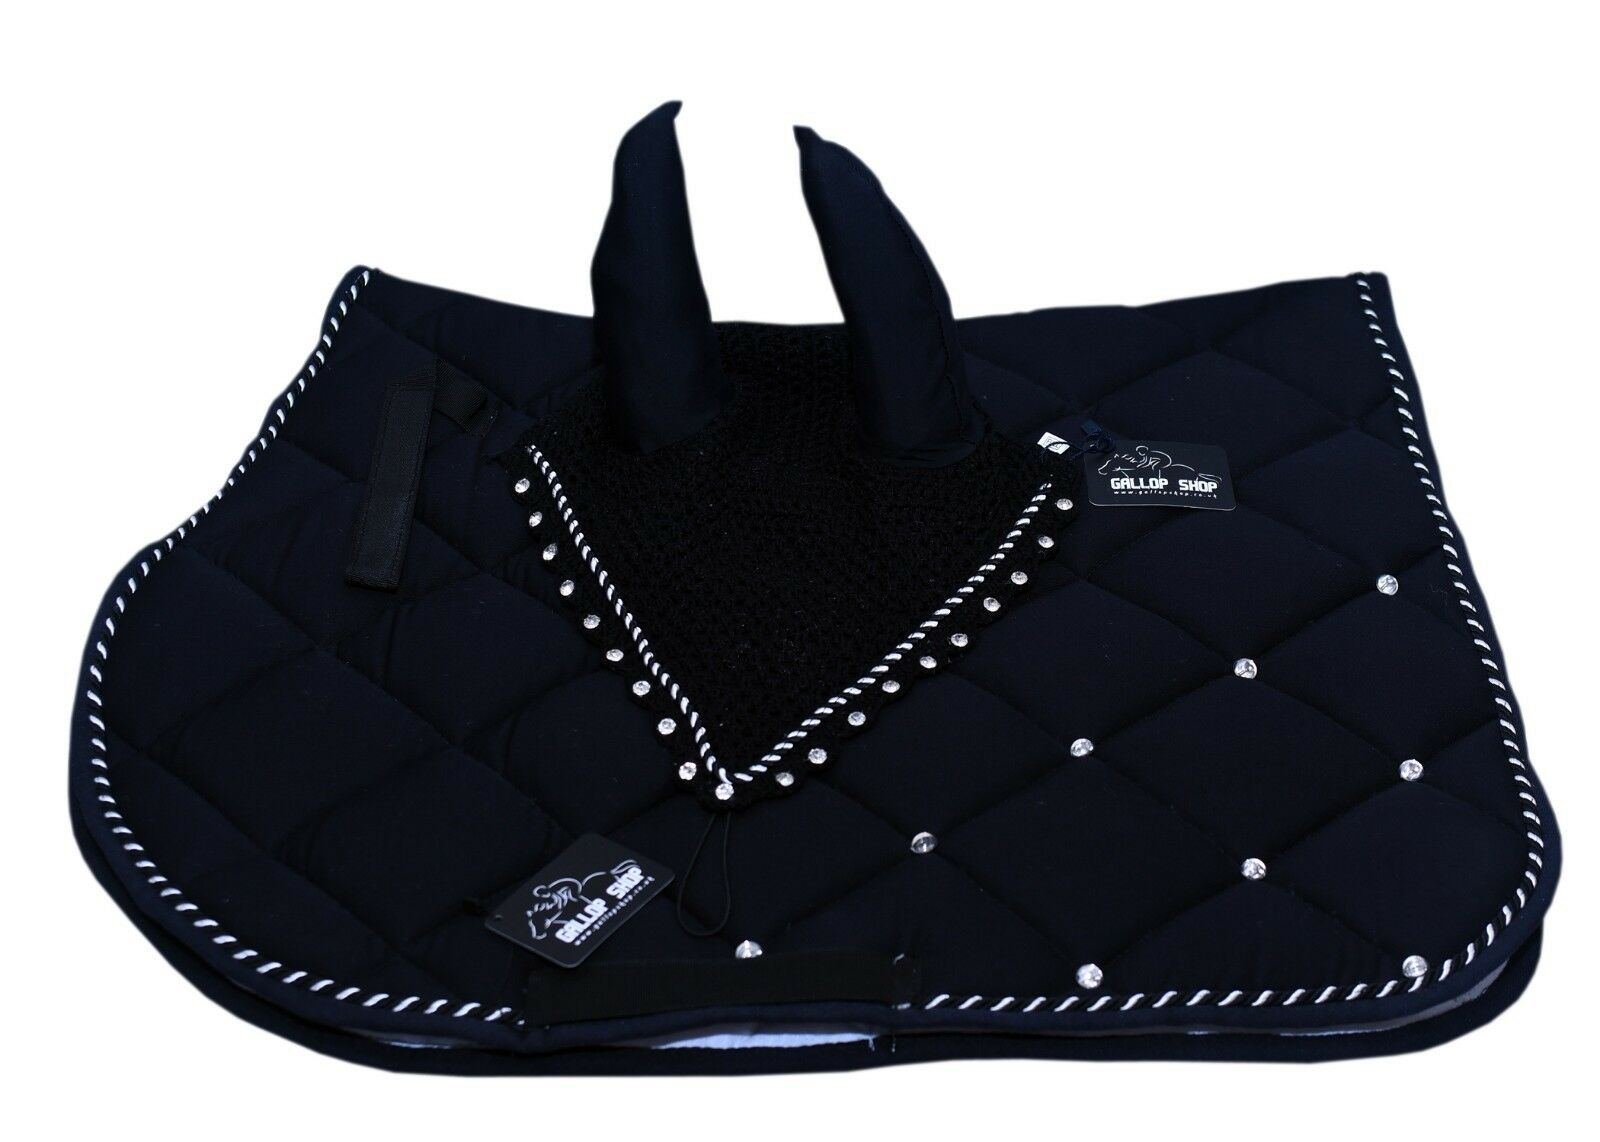 General Horse Saddle Pad  Fly Veil Set Vented Cotton Honeycomb Fabric with Jewel  first-class service